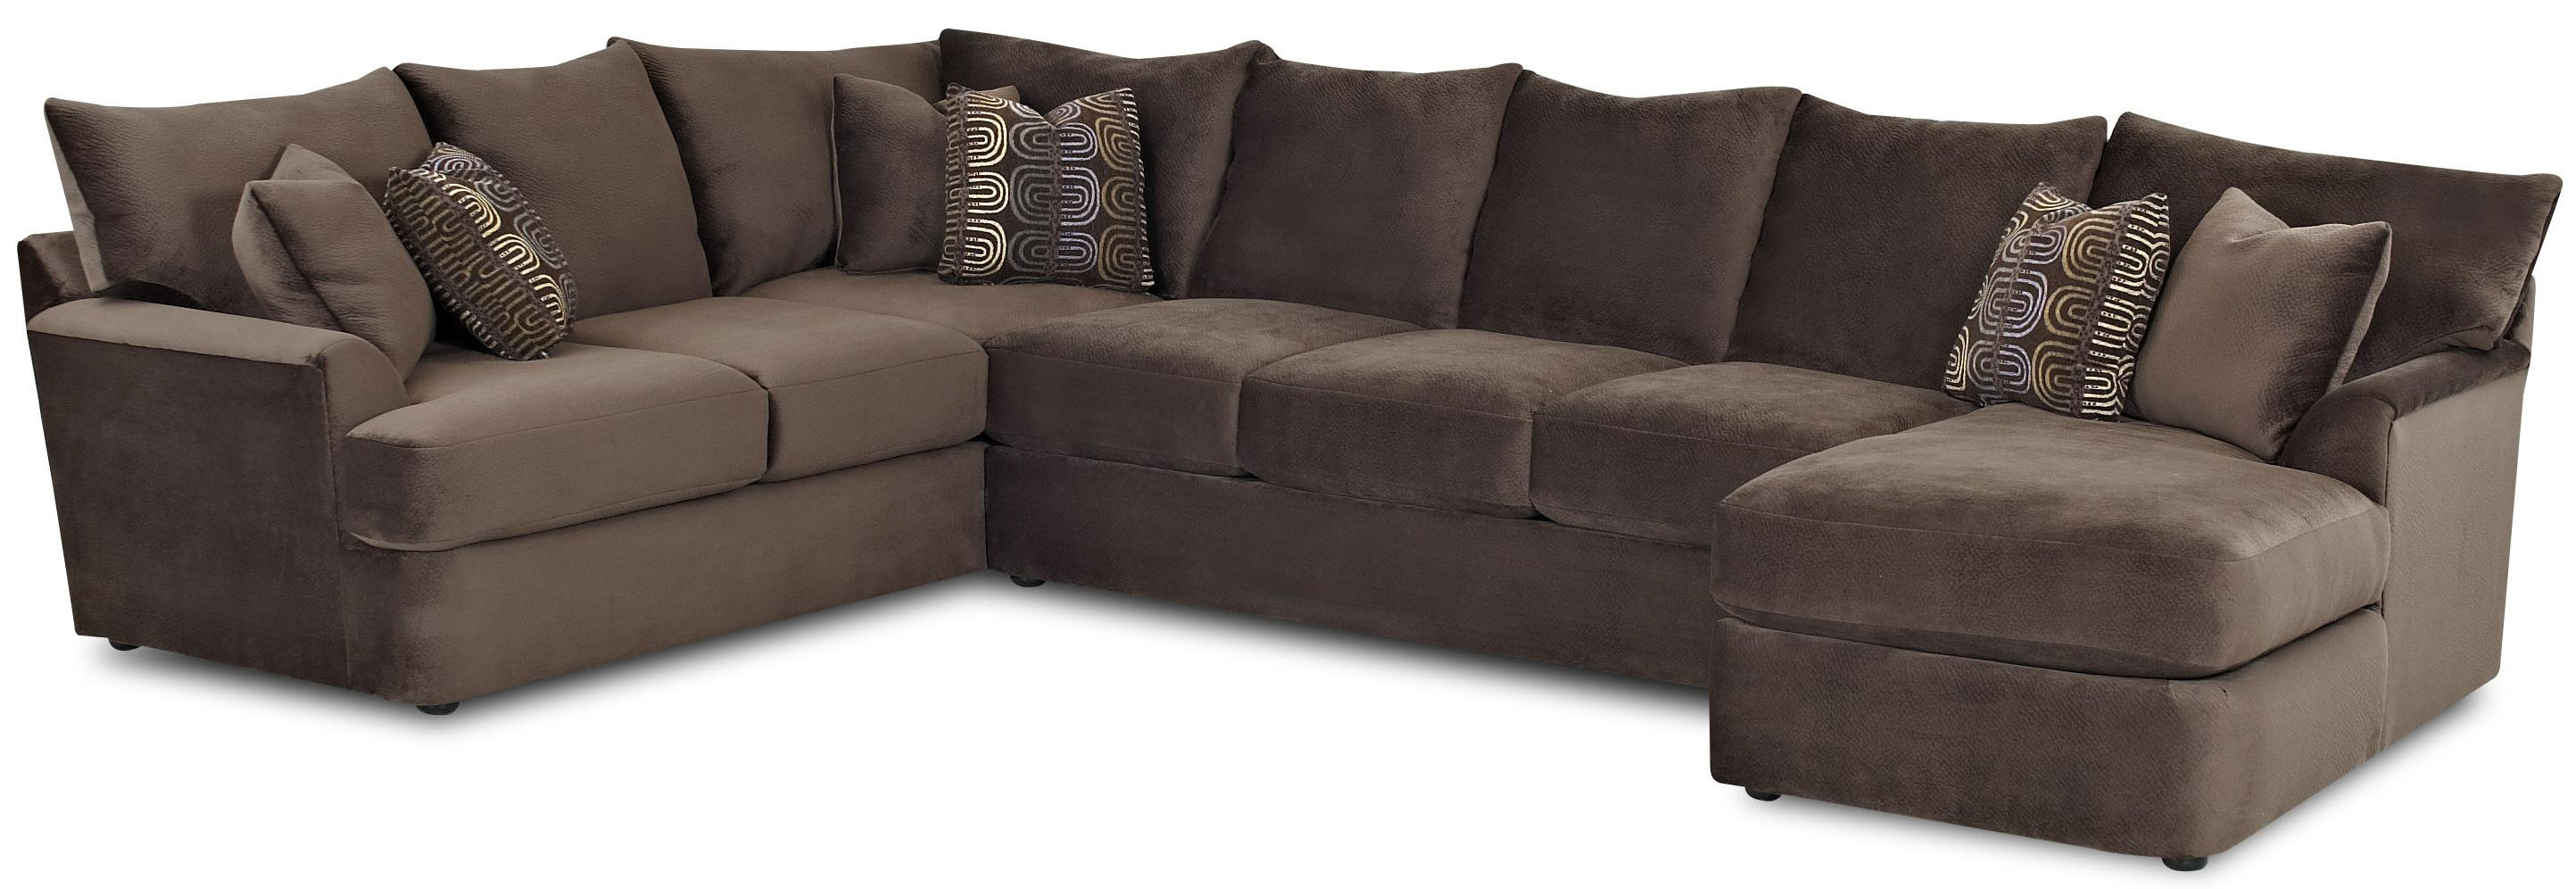 sofa deals nj ashley sleeper reviews klaussner findley l shaped sectional with right